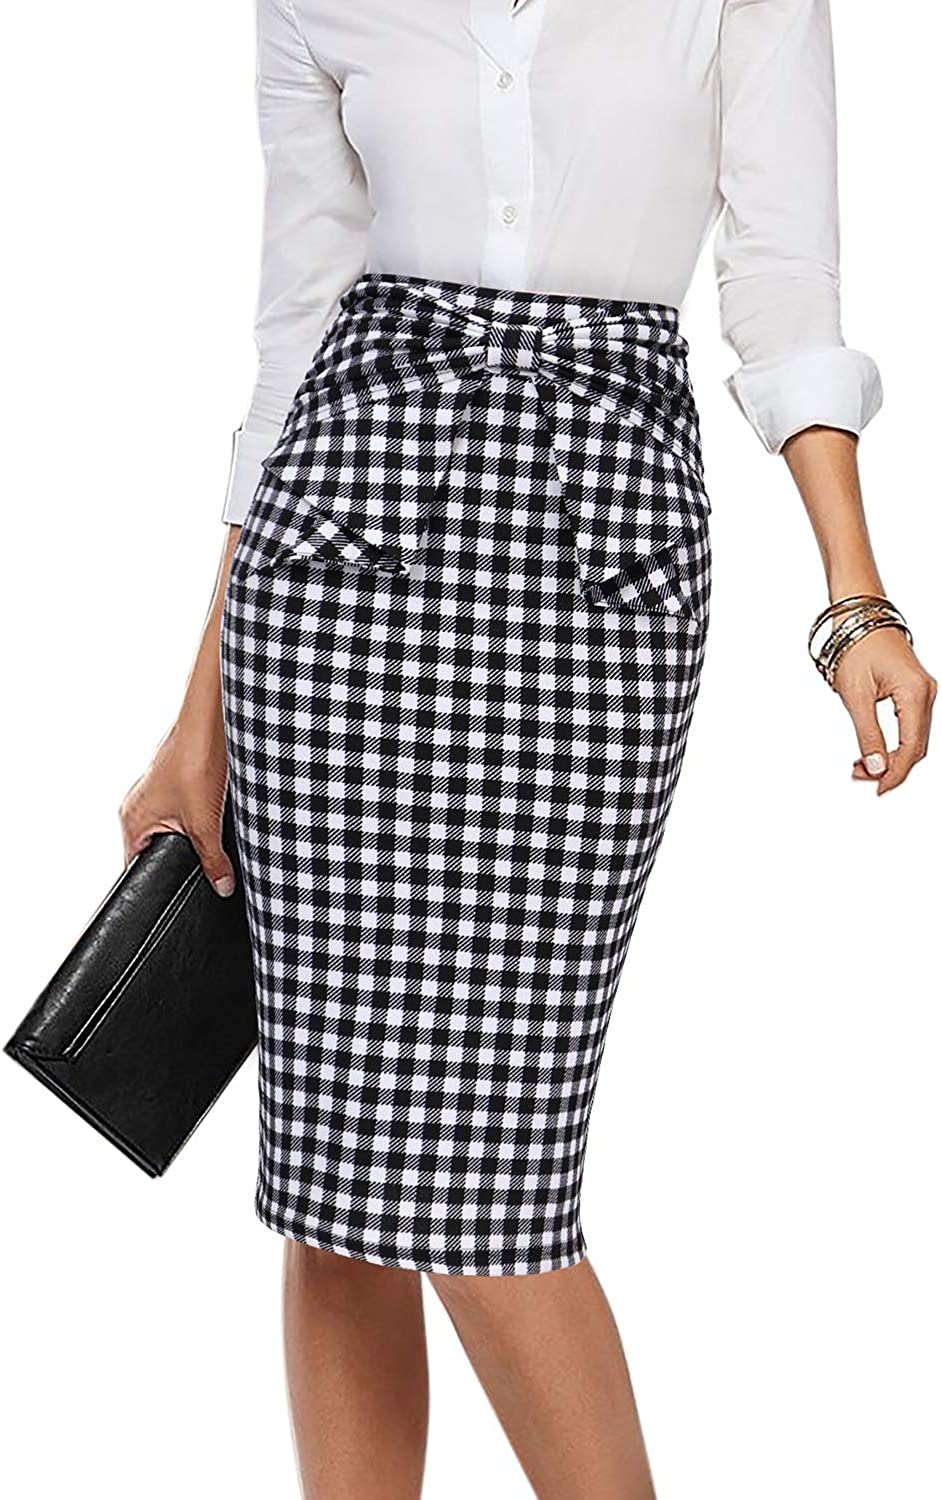 VFSHOW Womens Black and White Plaid Pleated Bow High Waist Slim Work Office Business Pencil Skirt 2395 TAT S